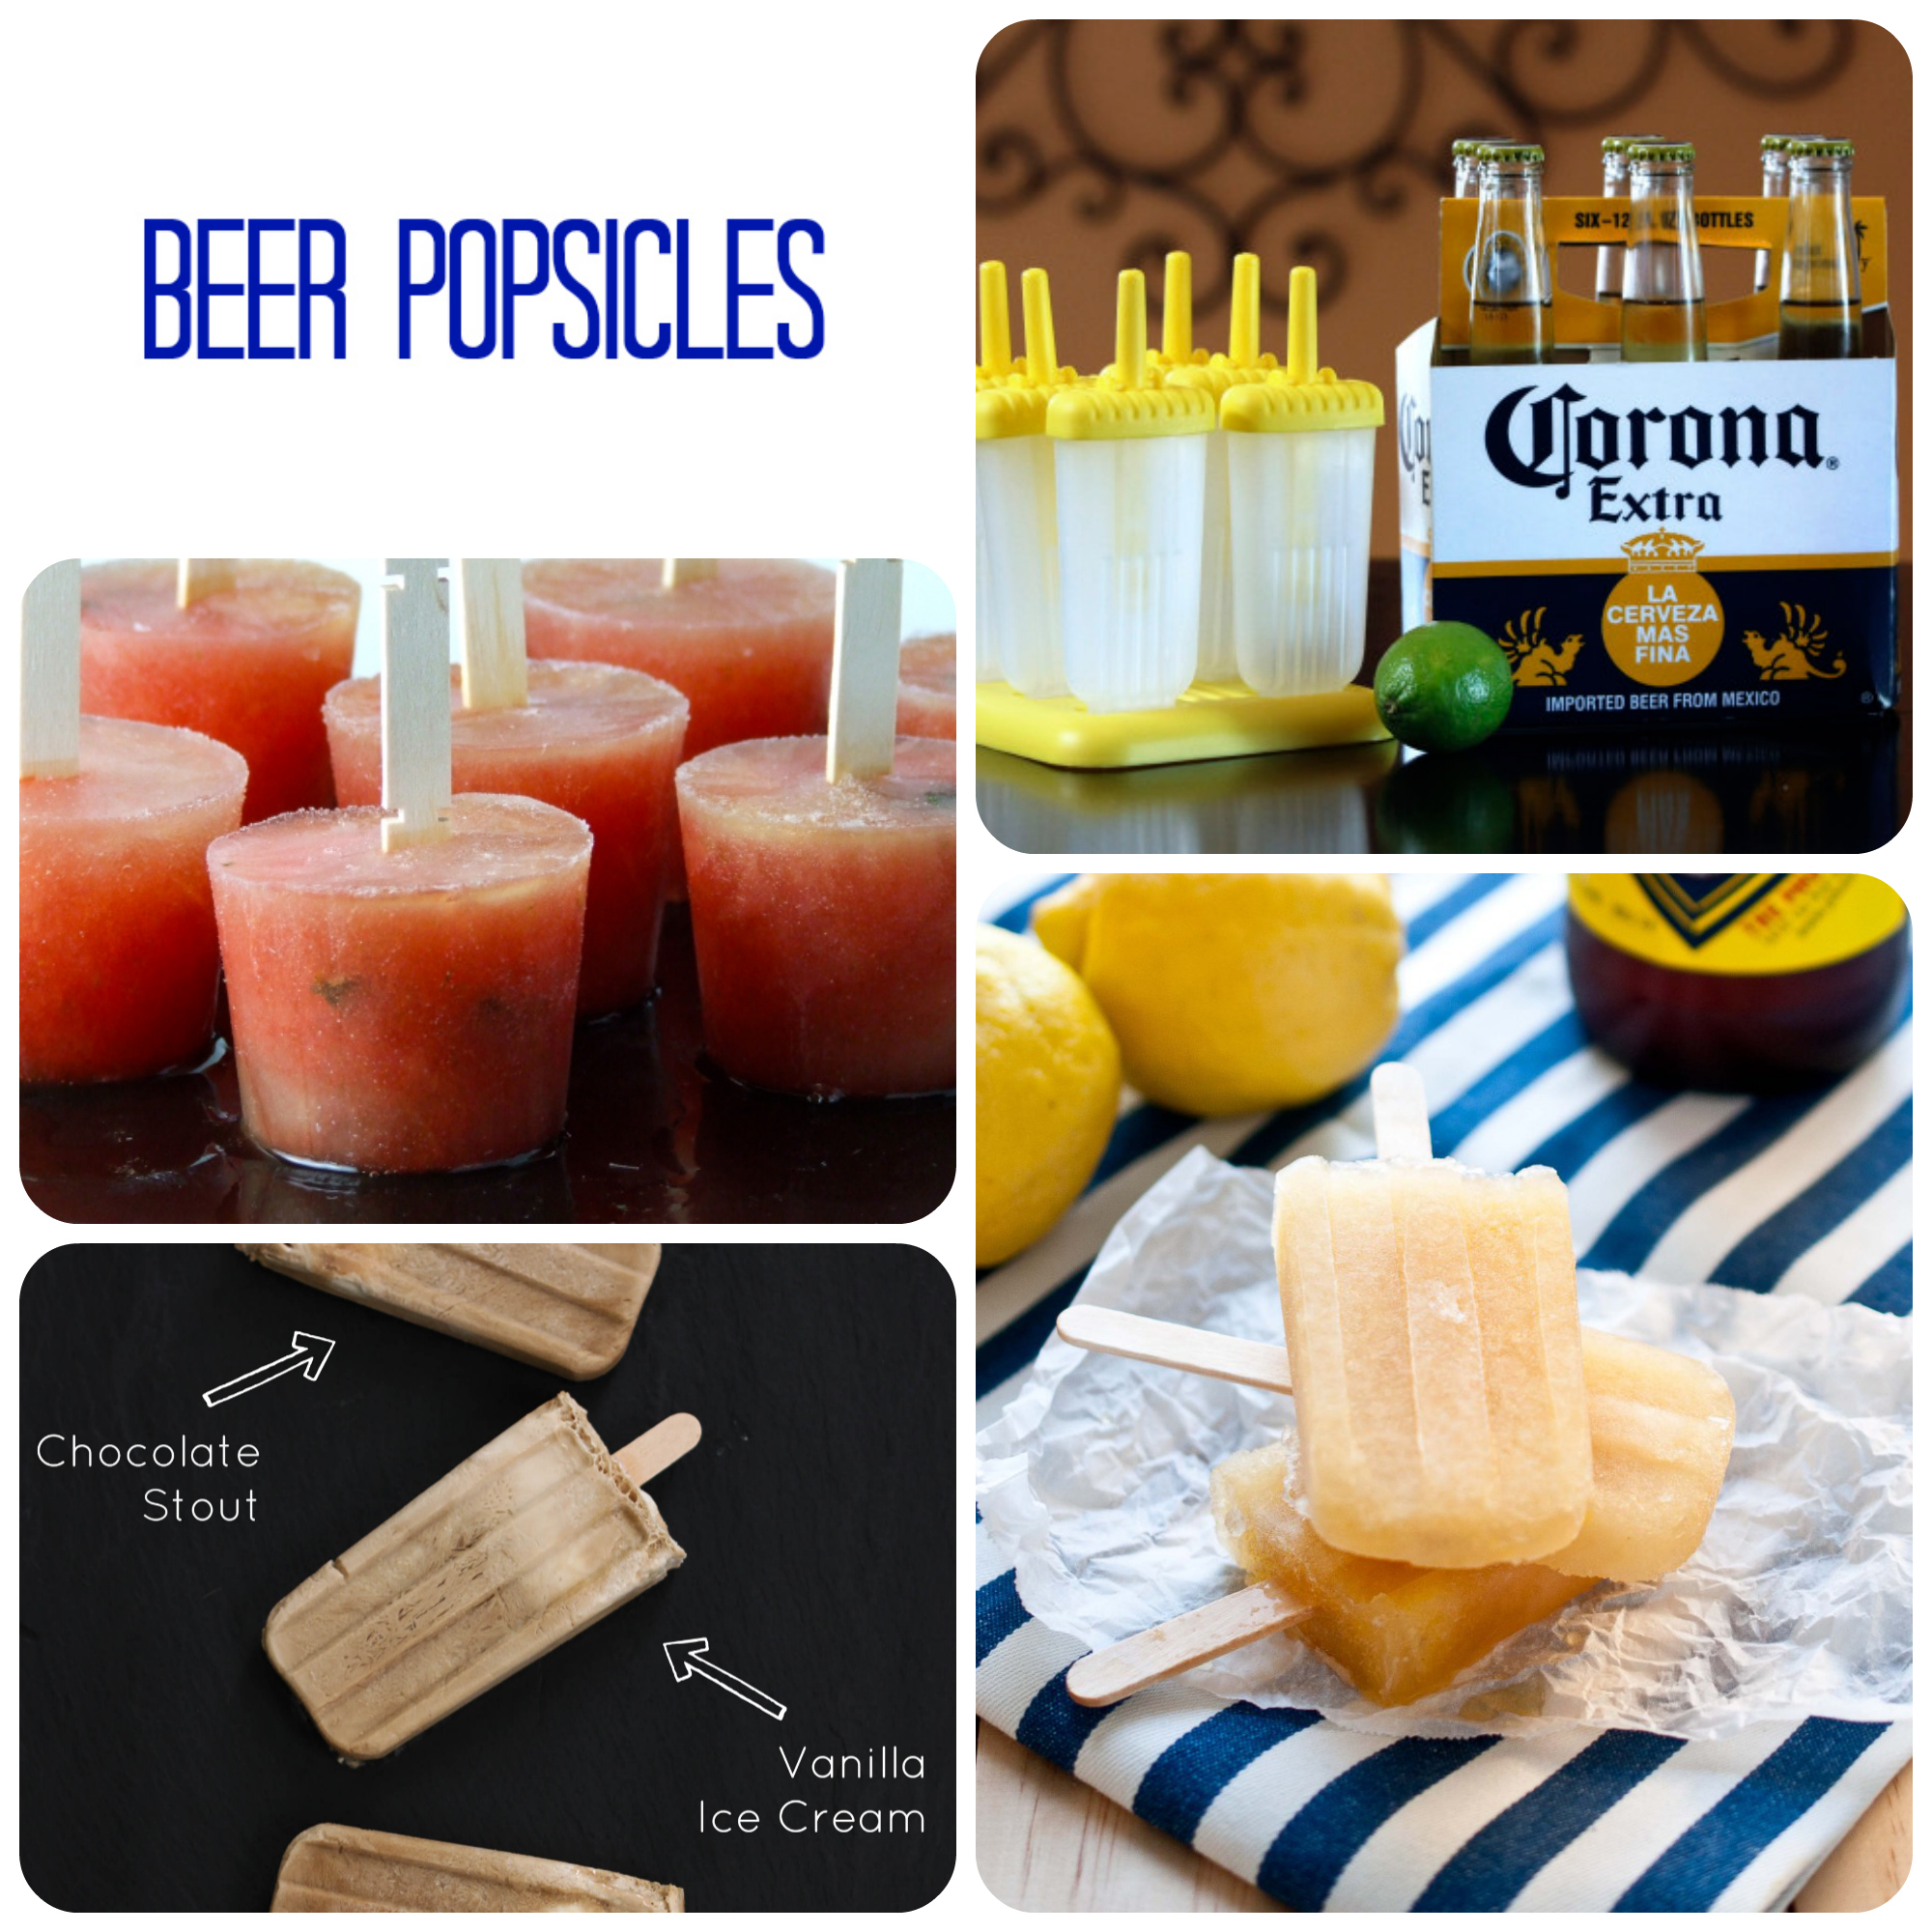 Beer popsicles